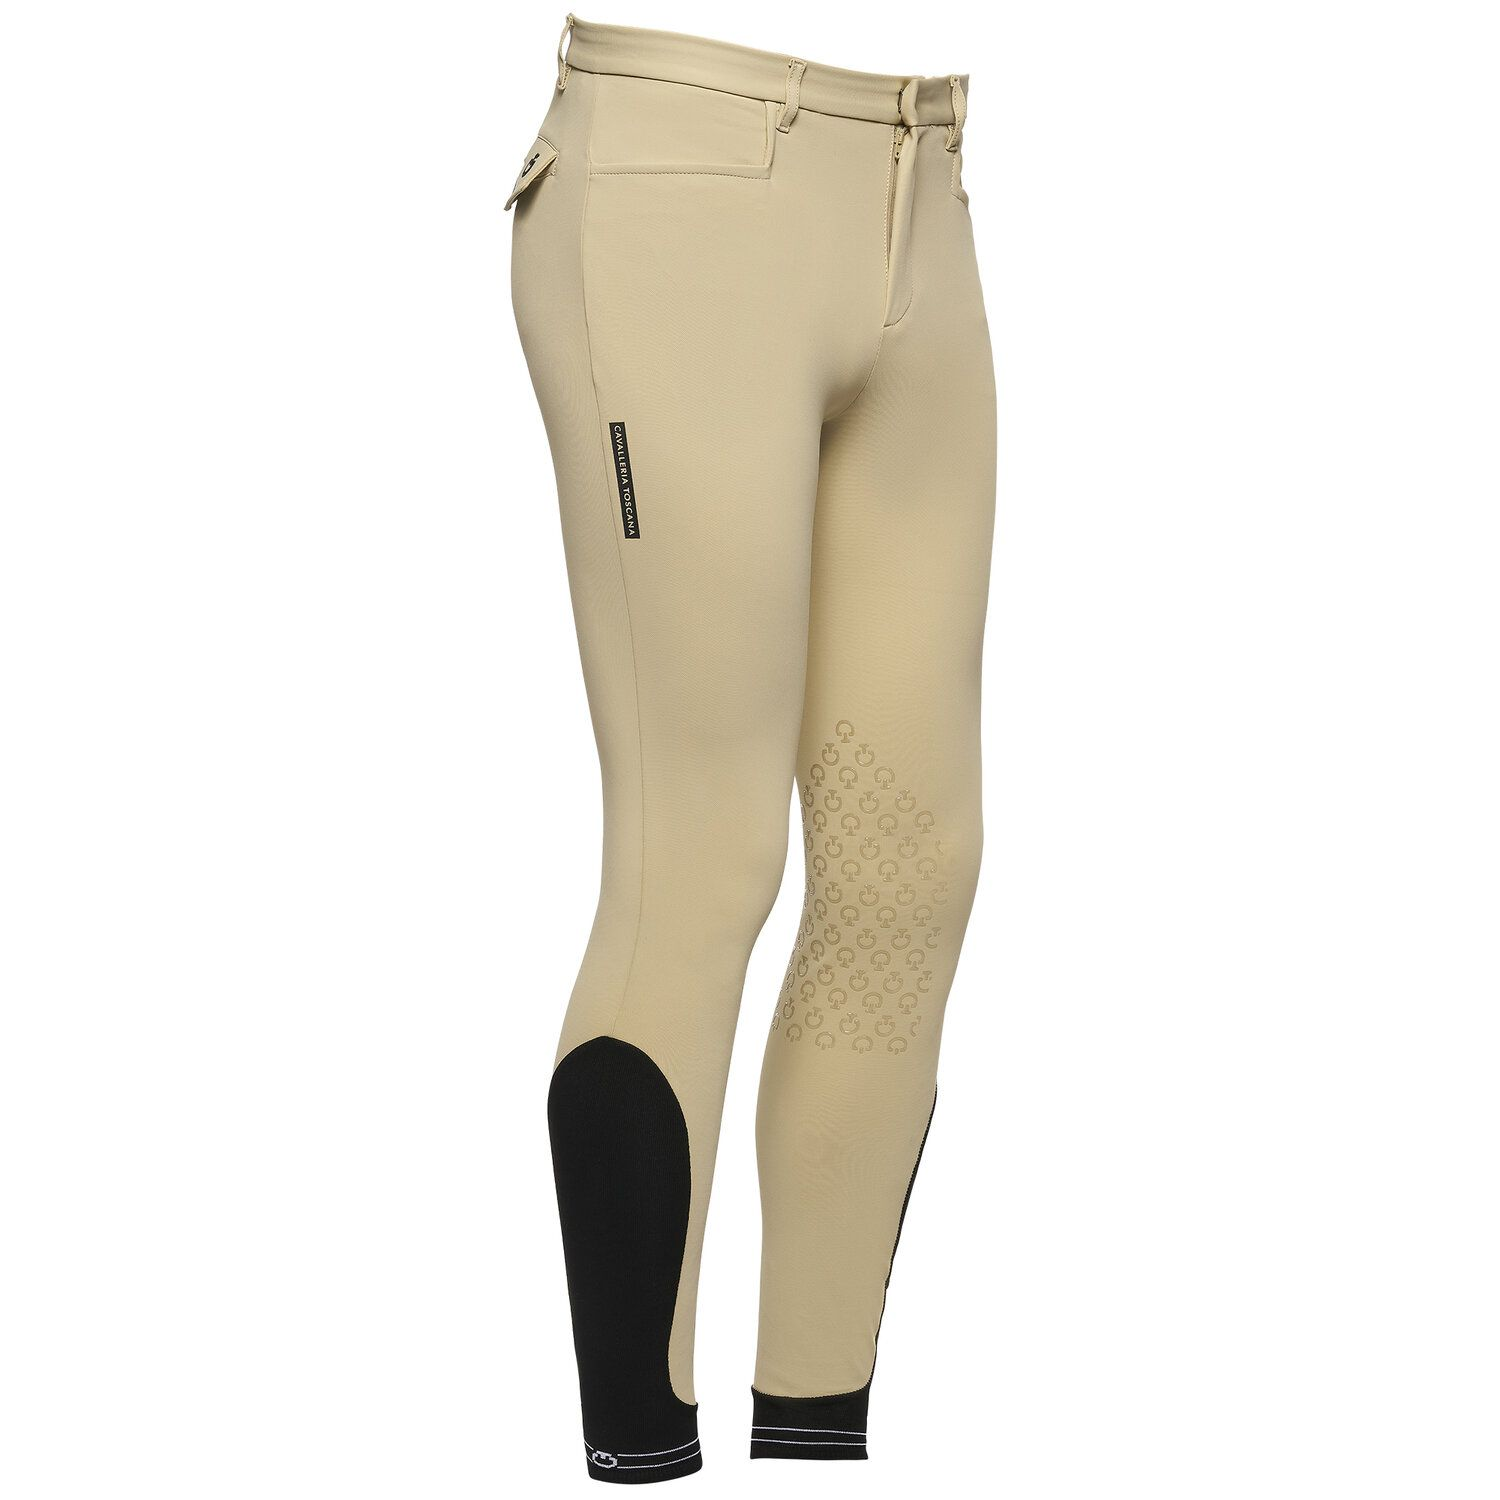 Men's knee grip breeches with perforated logo tape